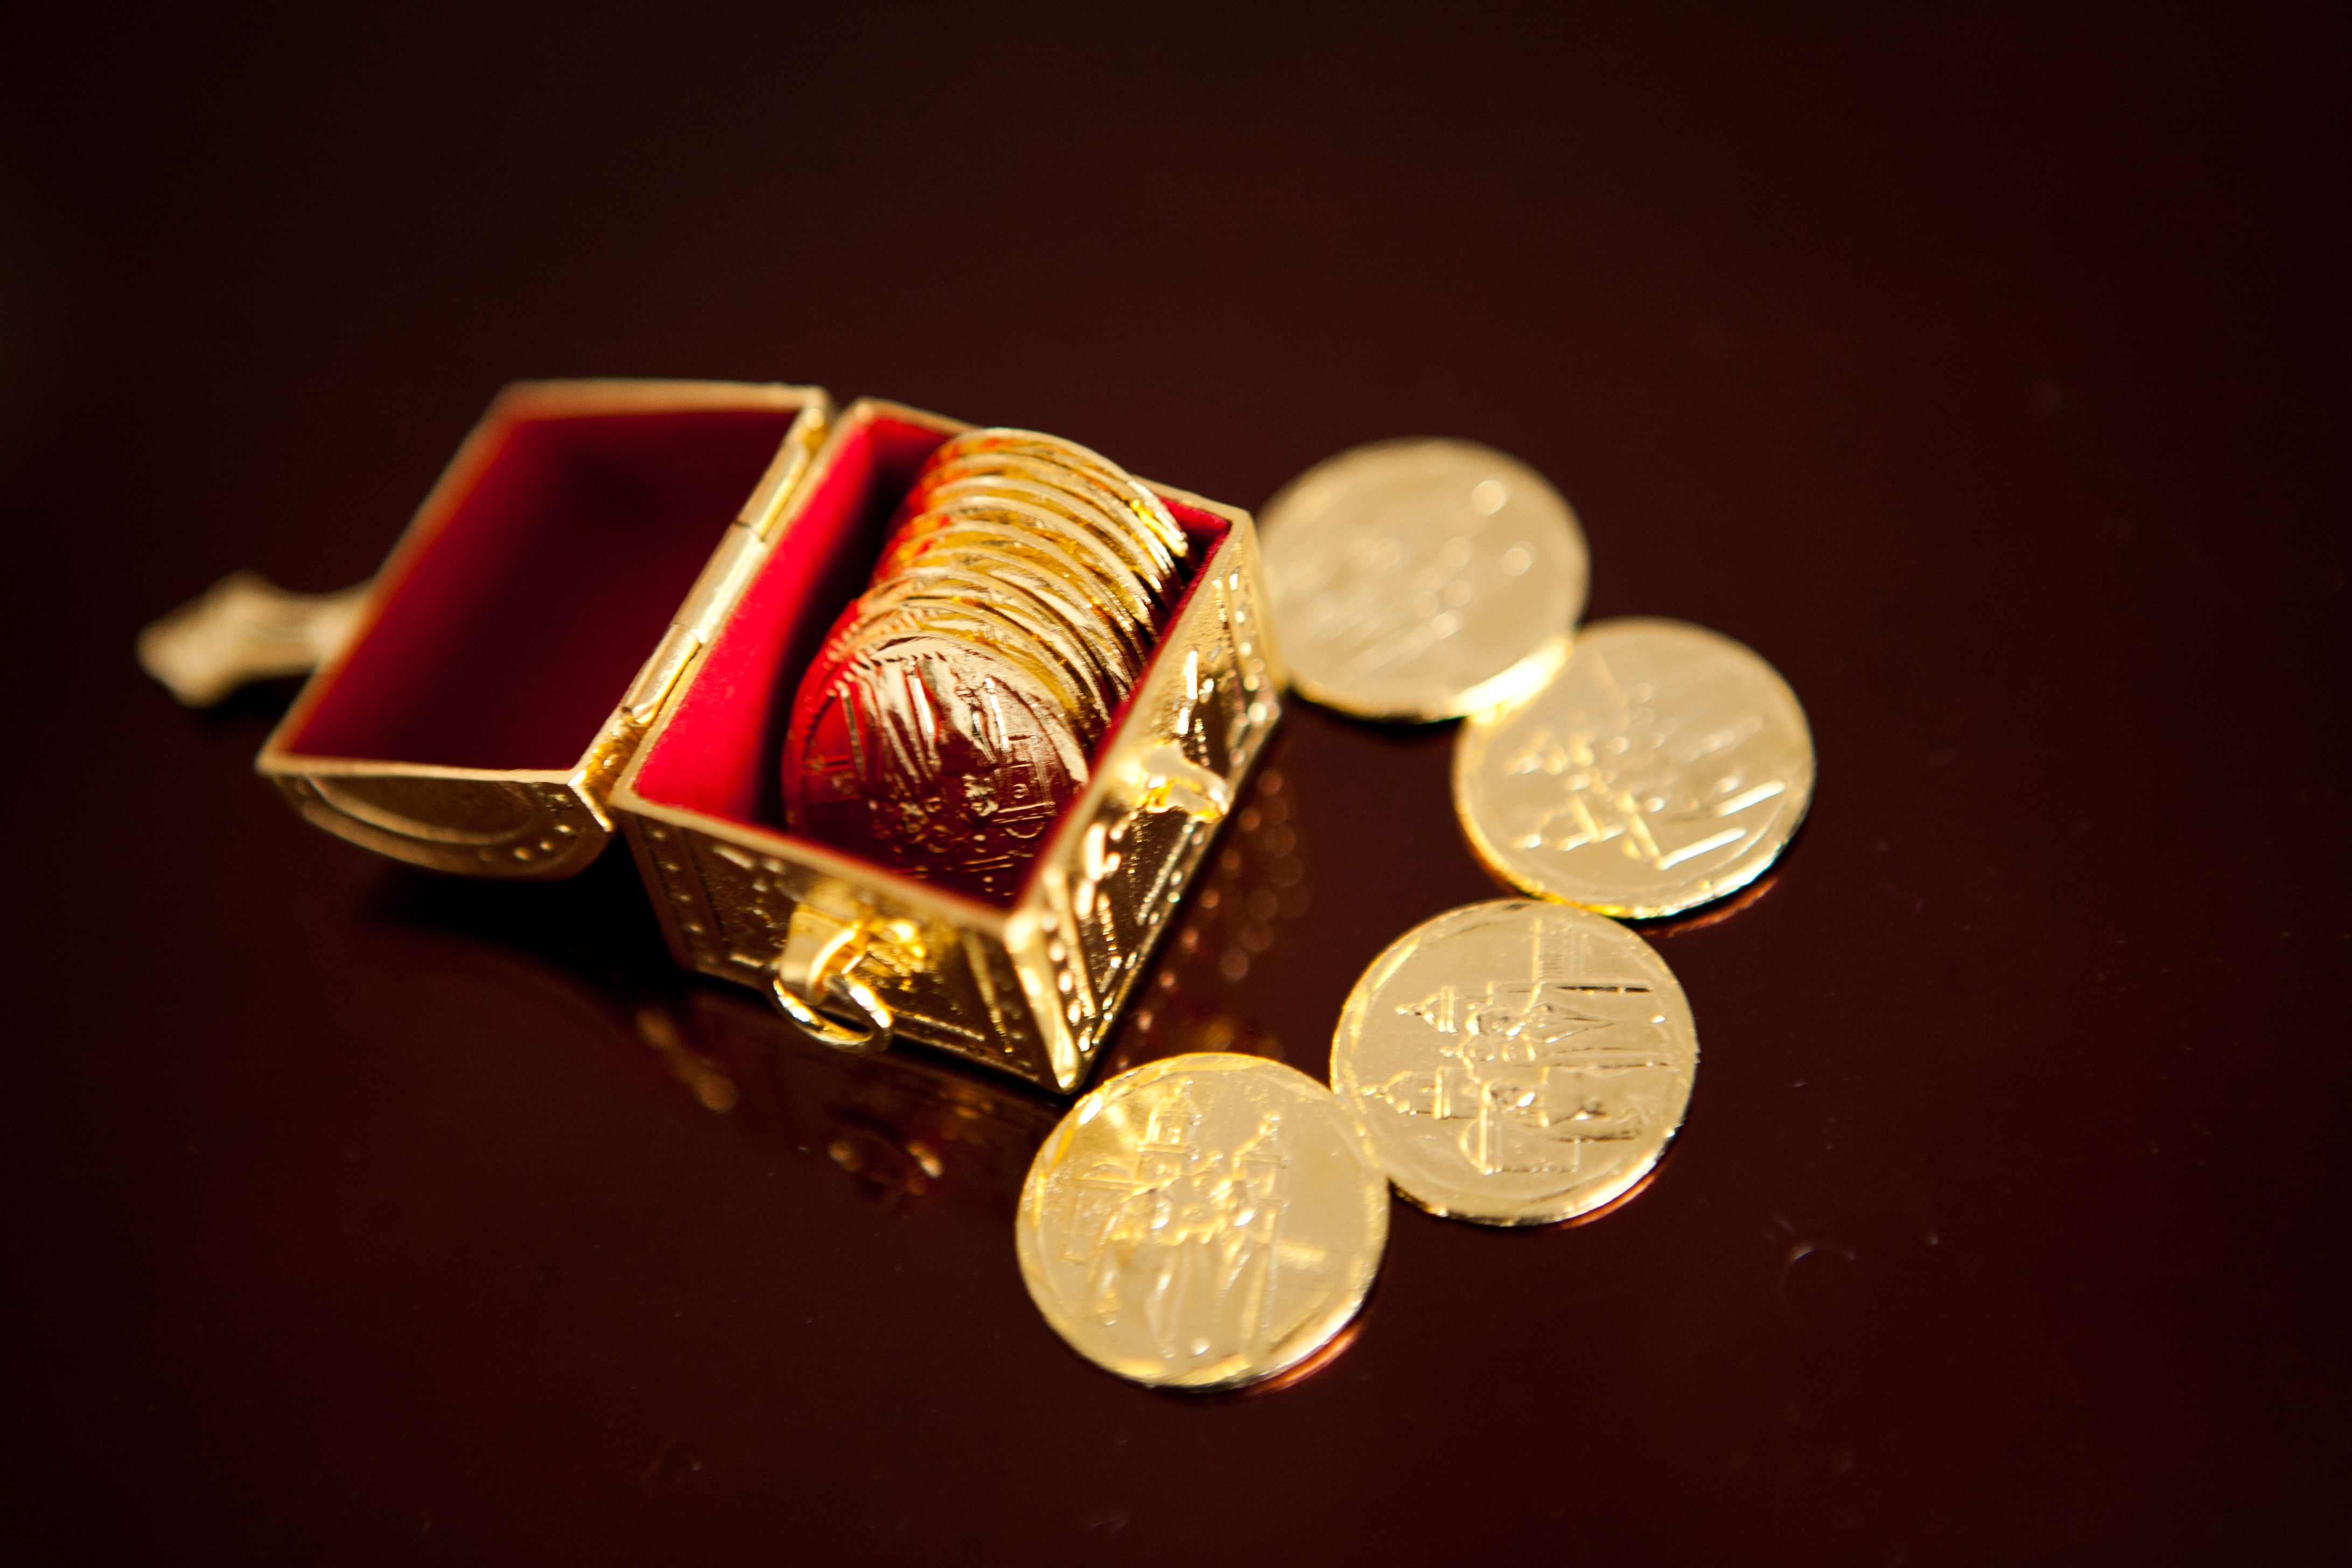 The las arras are little coins that are exchanged during the wedding ceremony these coins are - Point p arras ...